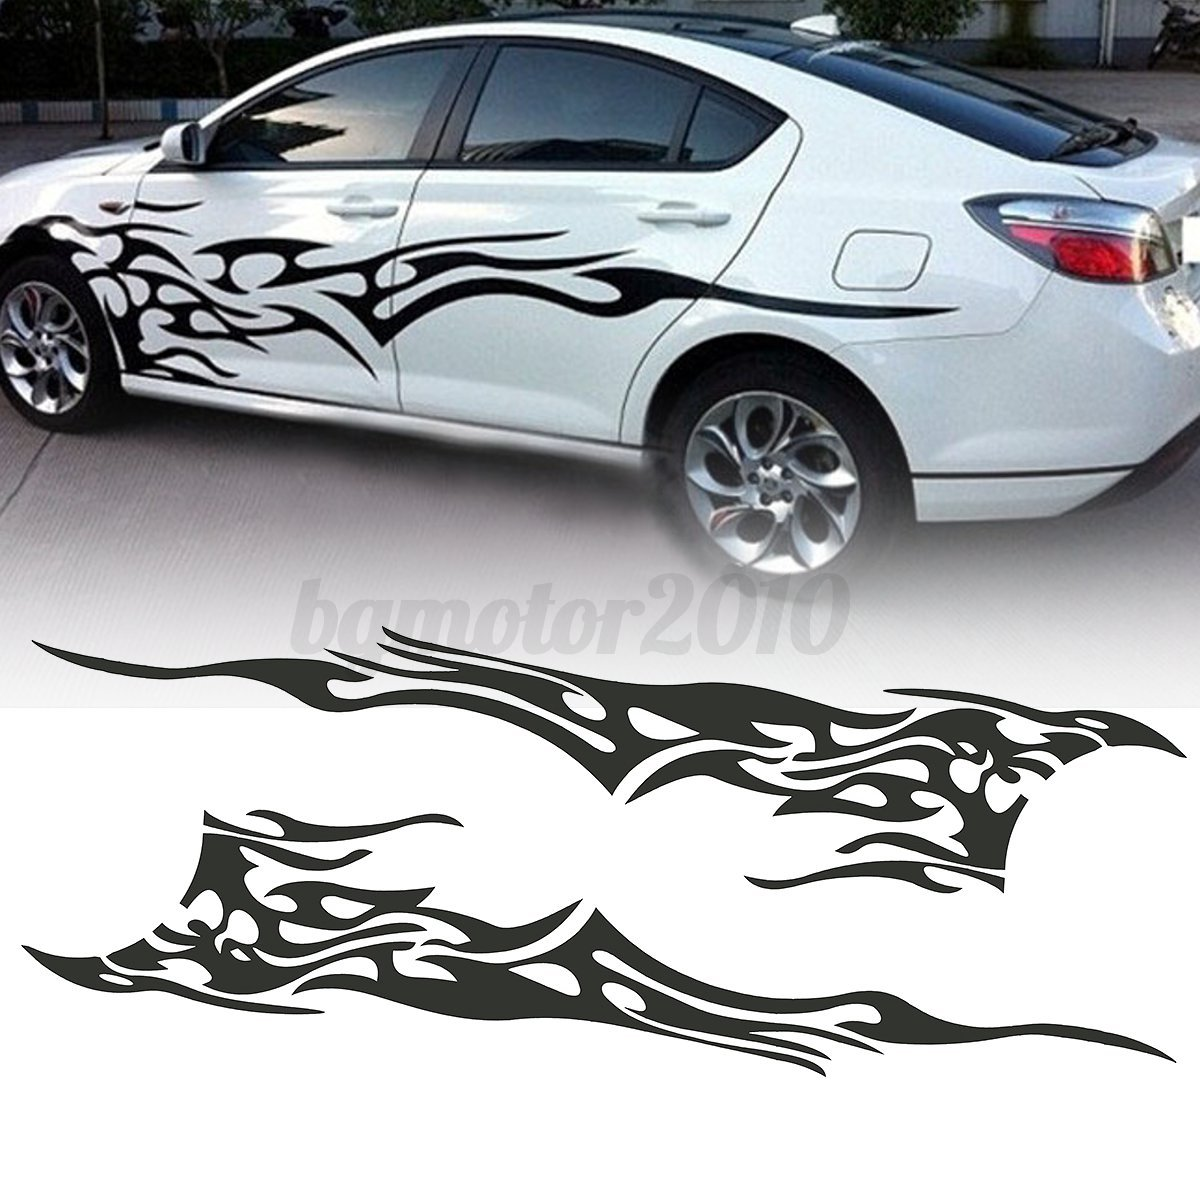 Pcs X Car Decal Vinyl Graphics Side Stickers Body Decal - Auto graphic stickersdiscount auto graphic decalsauto graphic decals on sale at